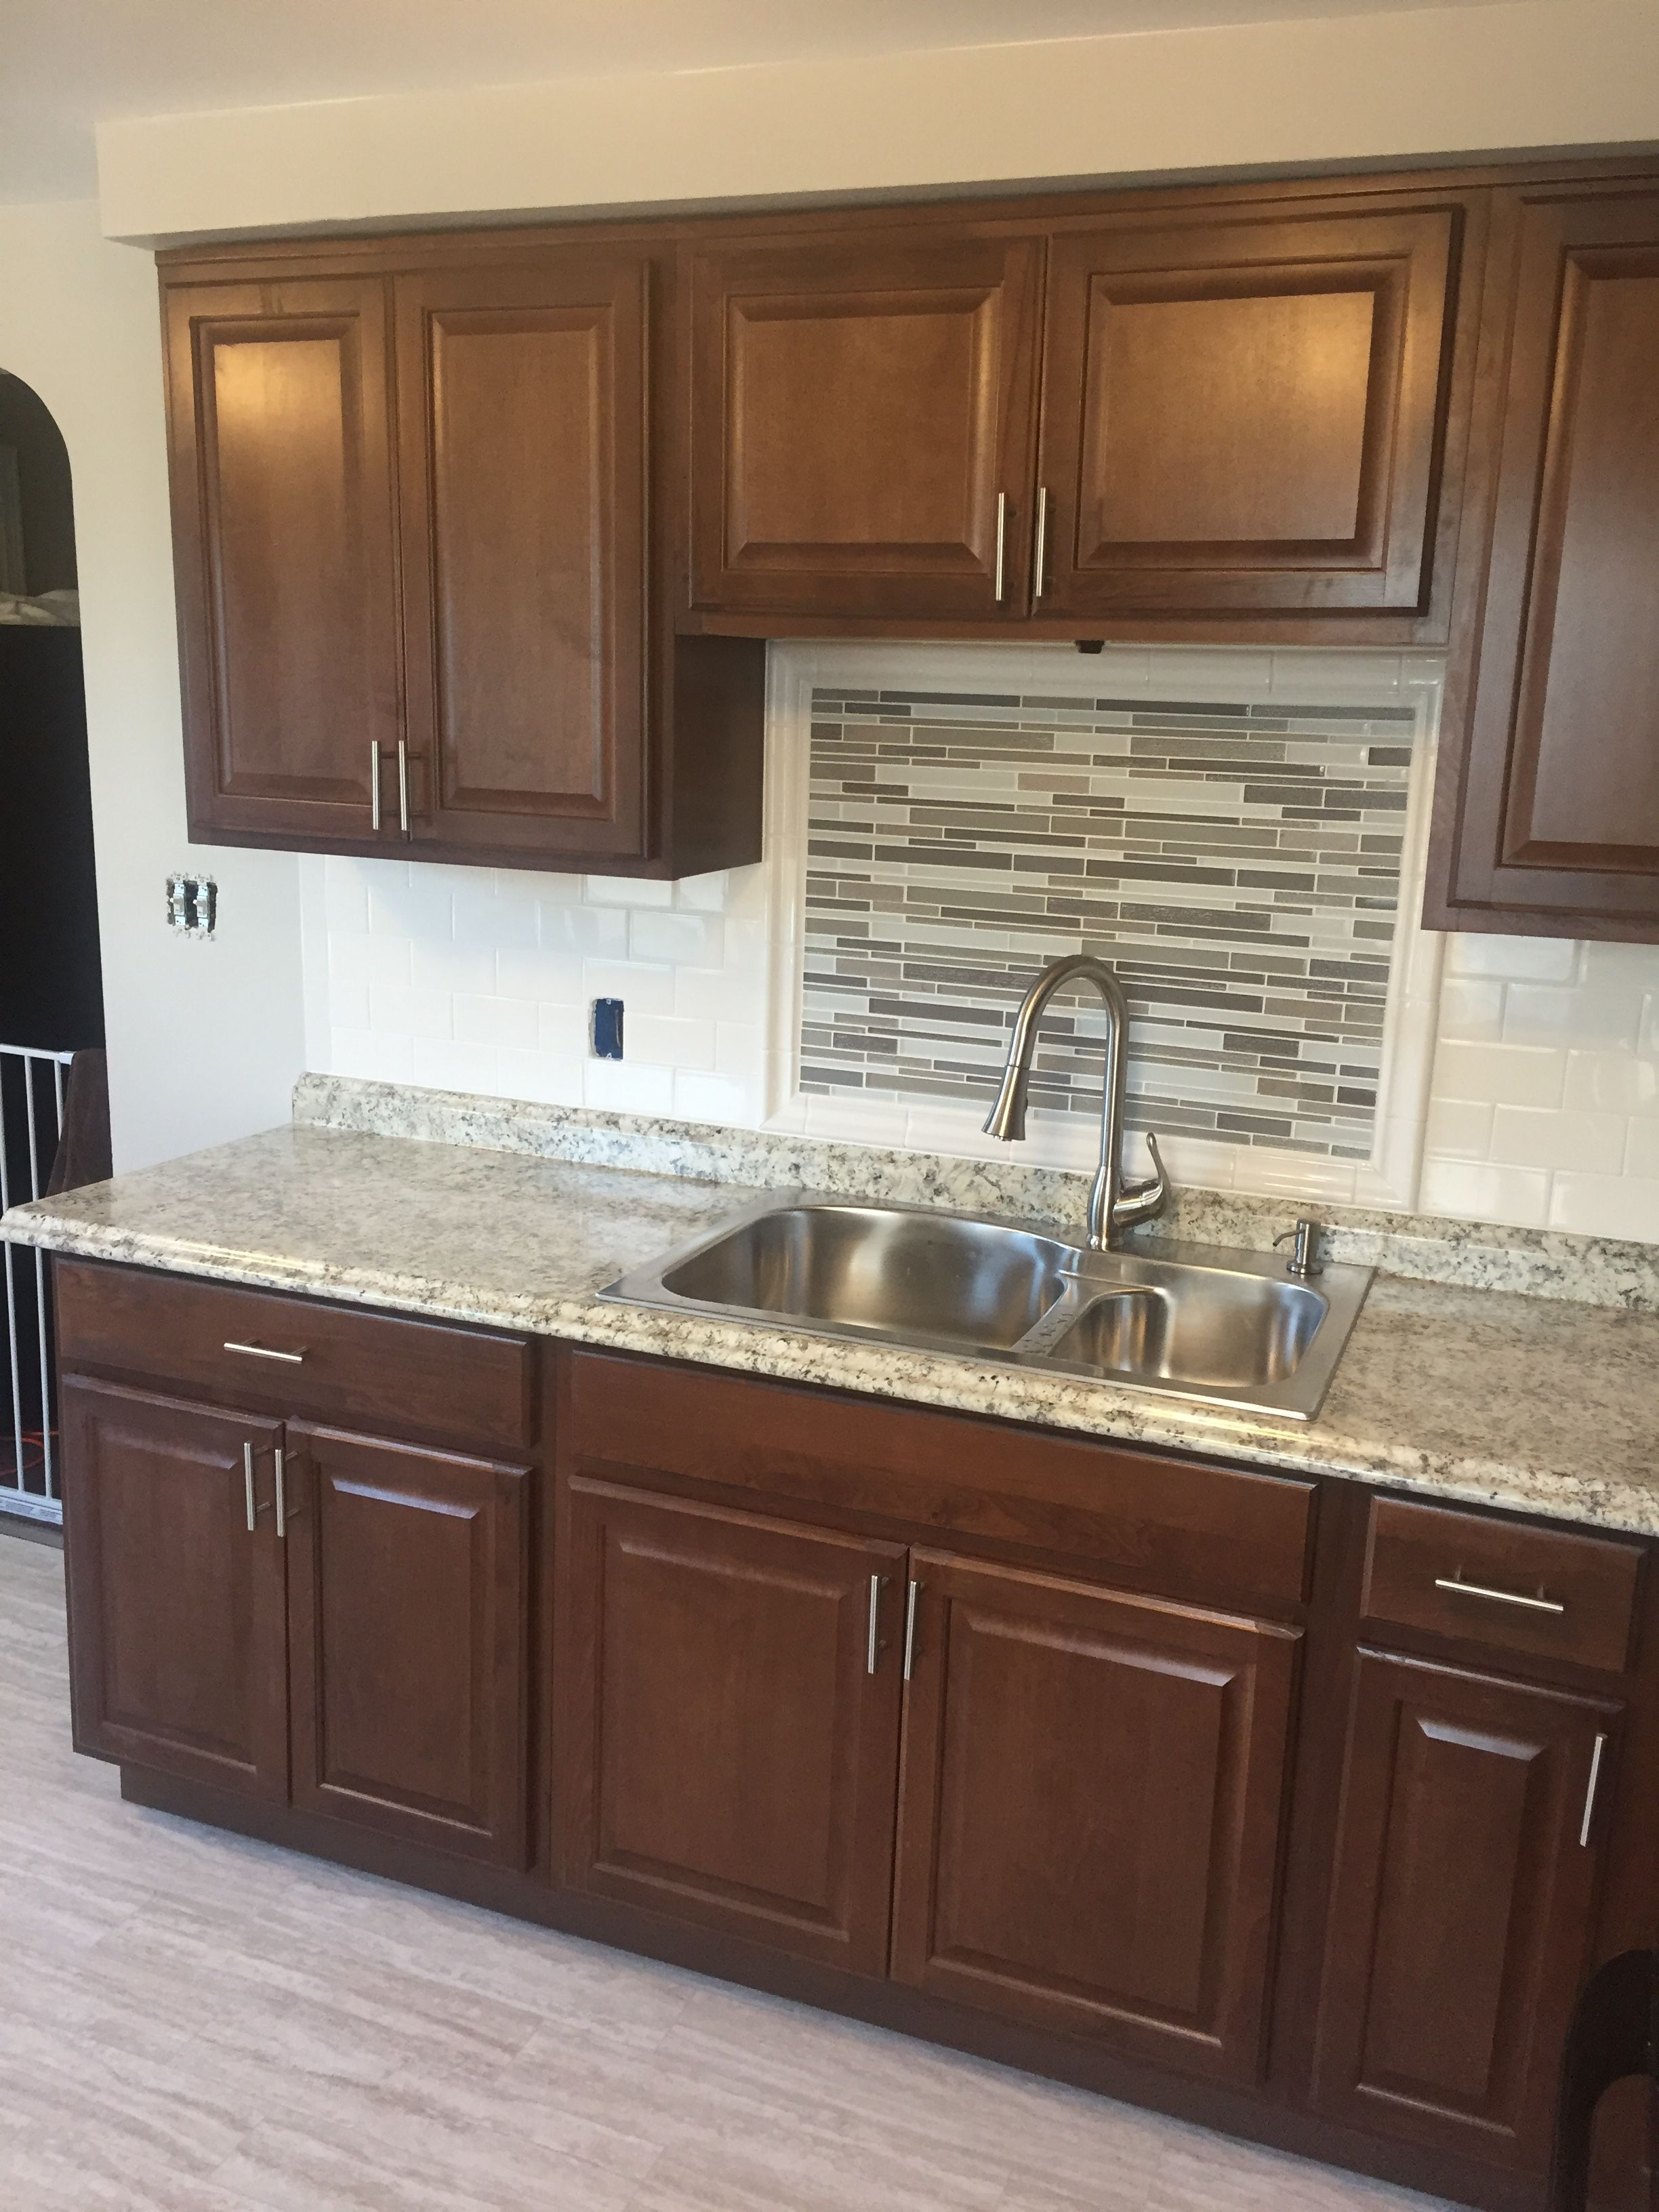 Hampton Bay Cognac Kitchen Cabinets With Subway Tile